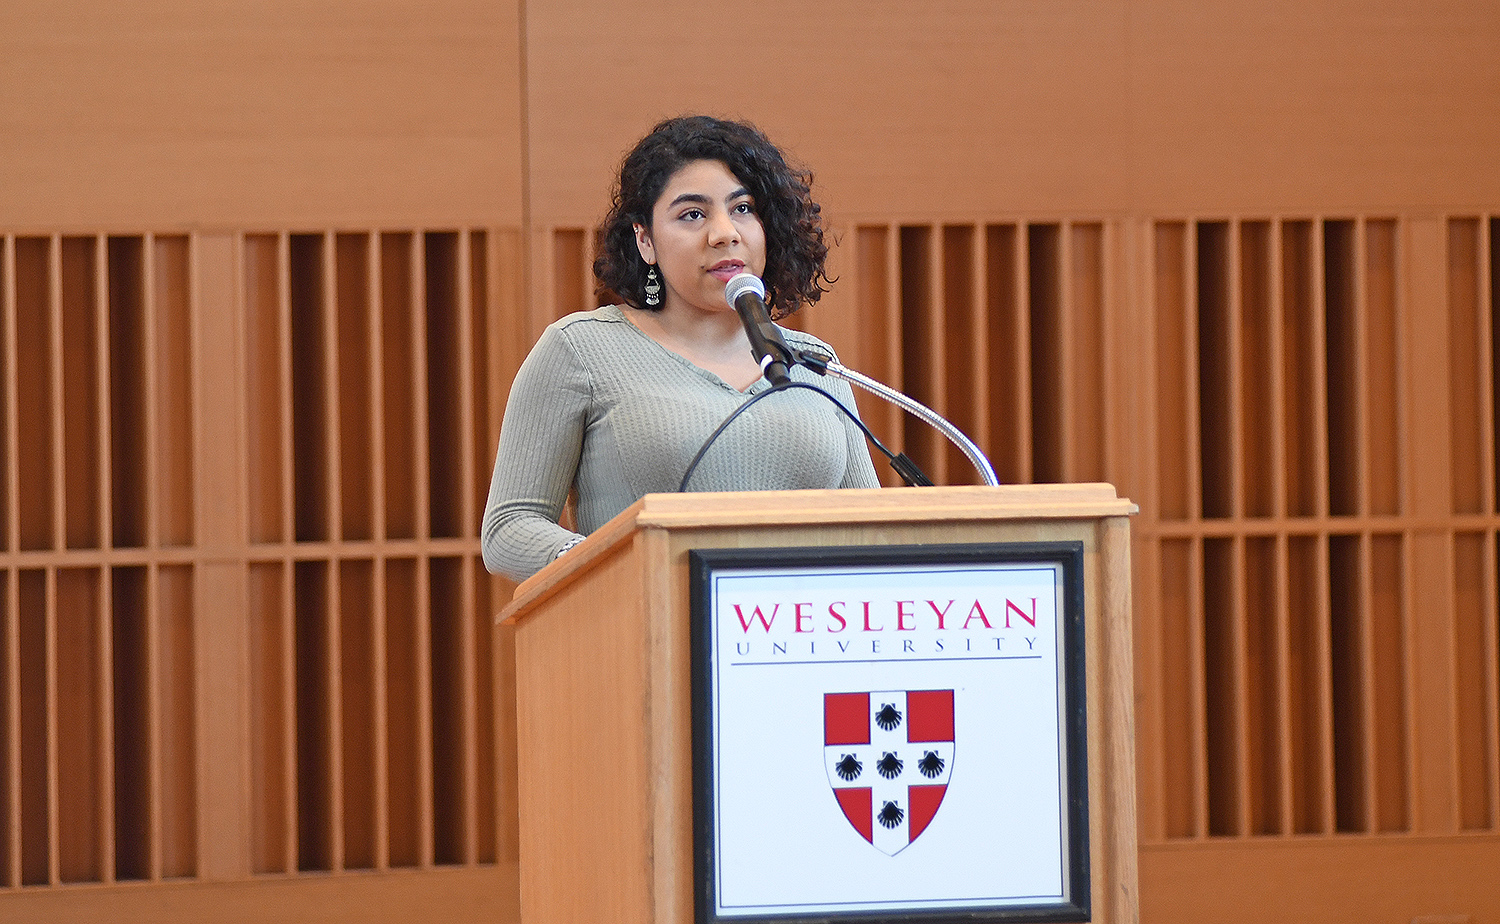 Natasha Guandique '20, presented an excerpt from King's baccalaureate address at Wesleyan on June 7, 1964.